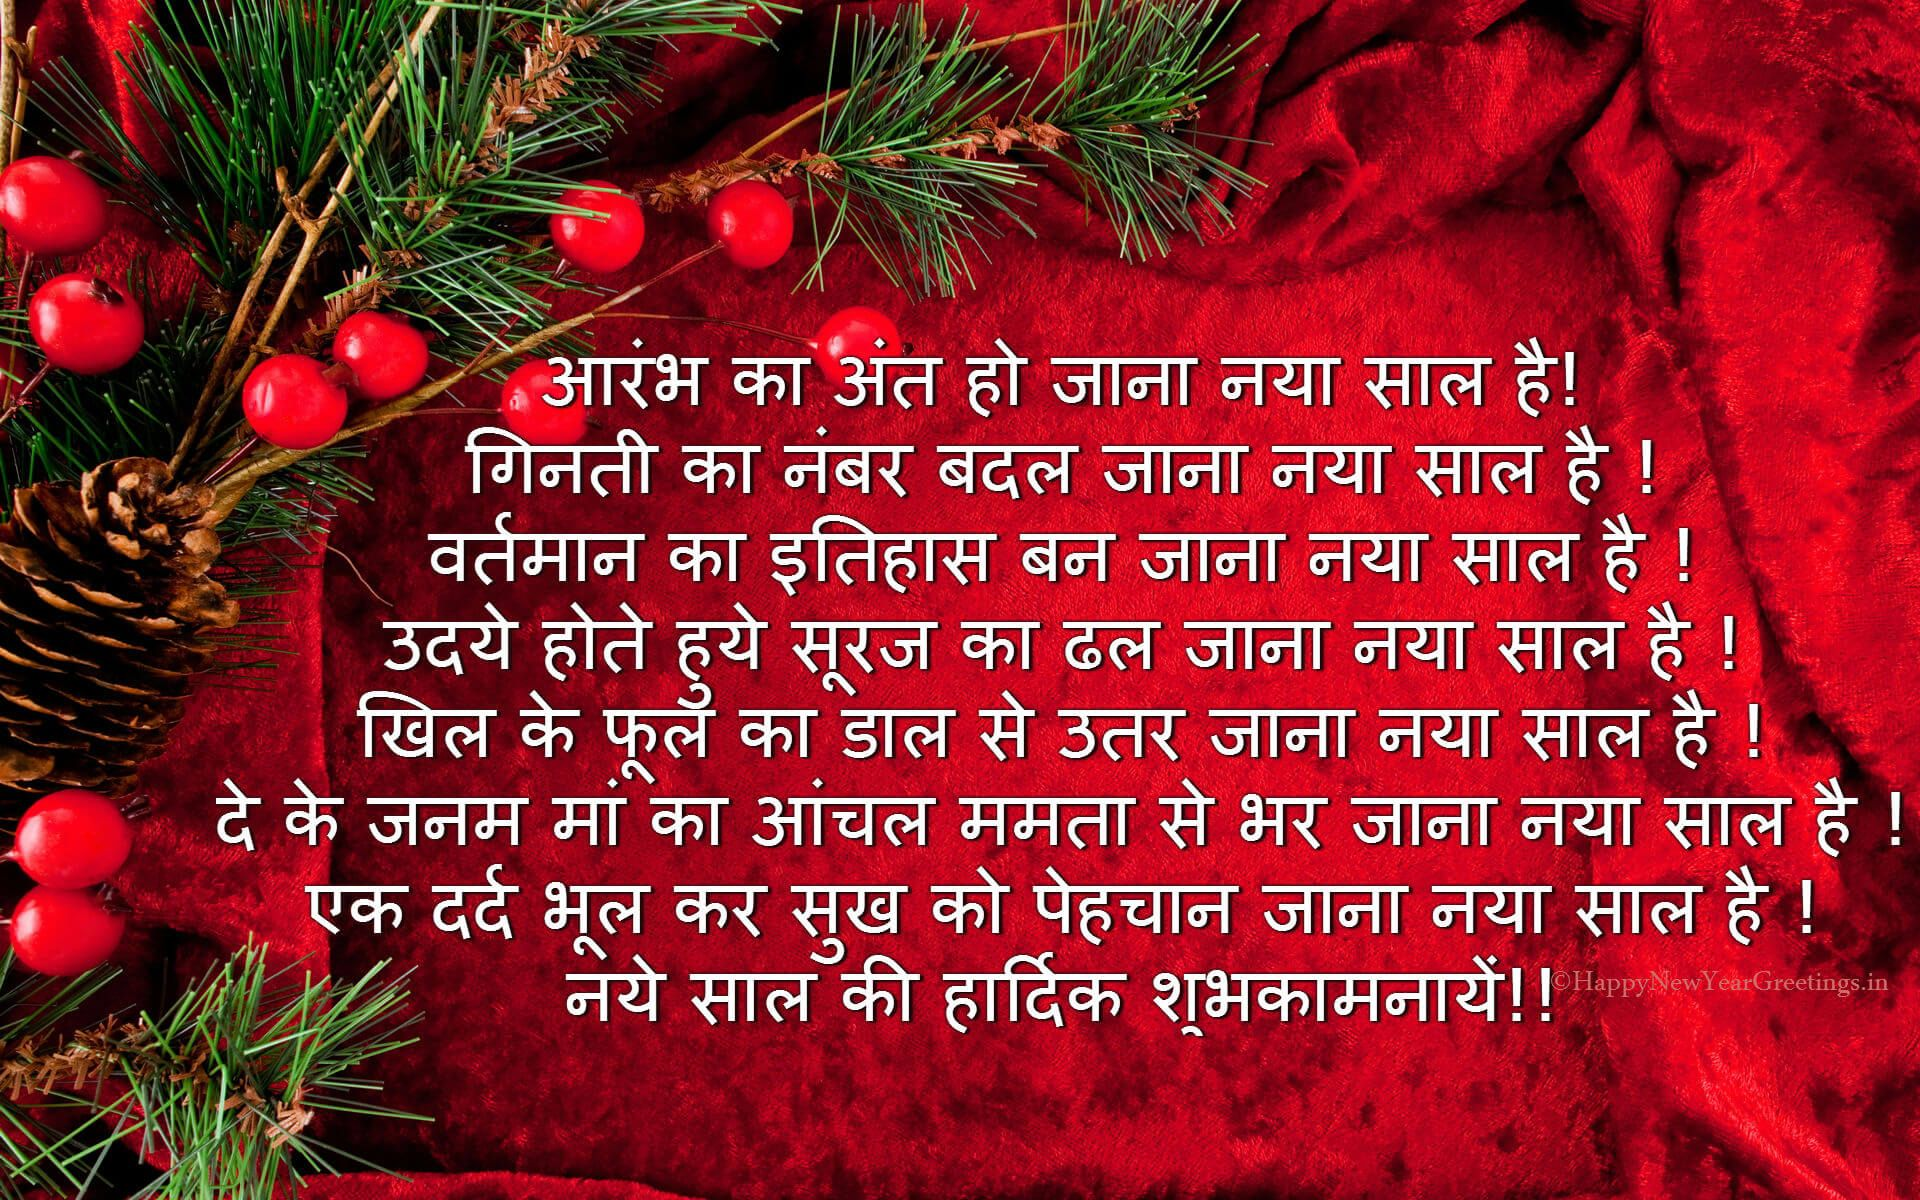 Happy new year 2018 poems in hindi poems in hindi for status happy new year 2018 poems in hindi poems in hindi for status m4hsunfo